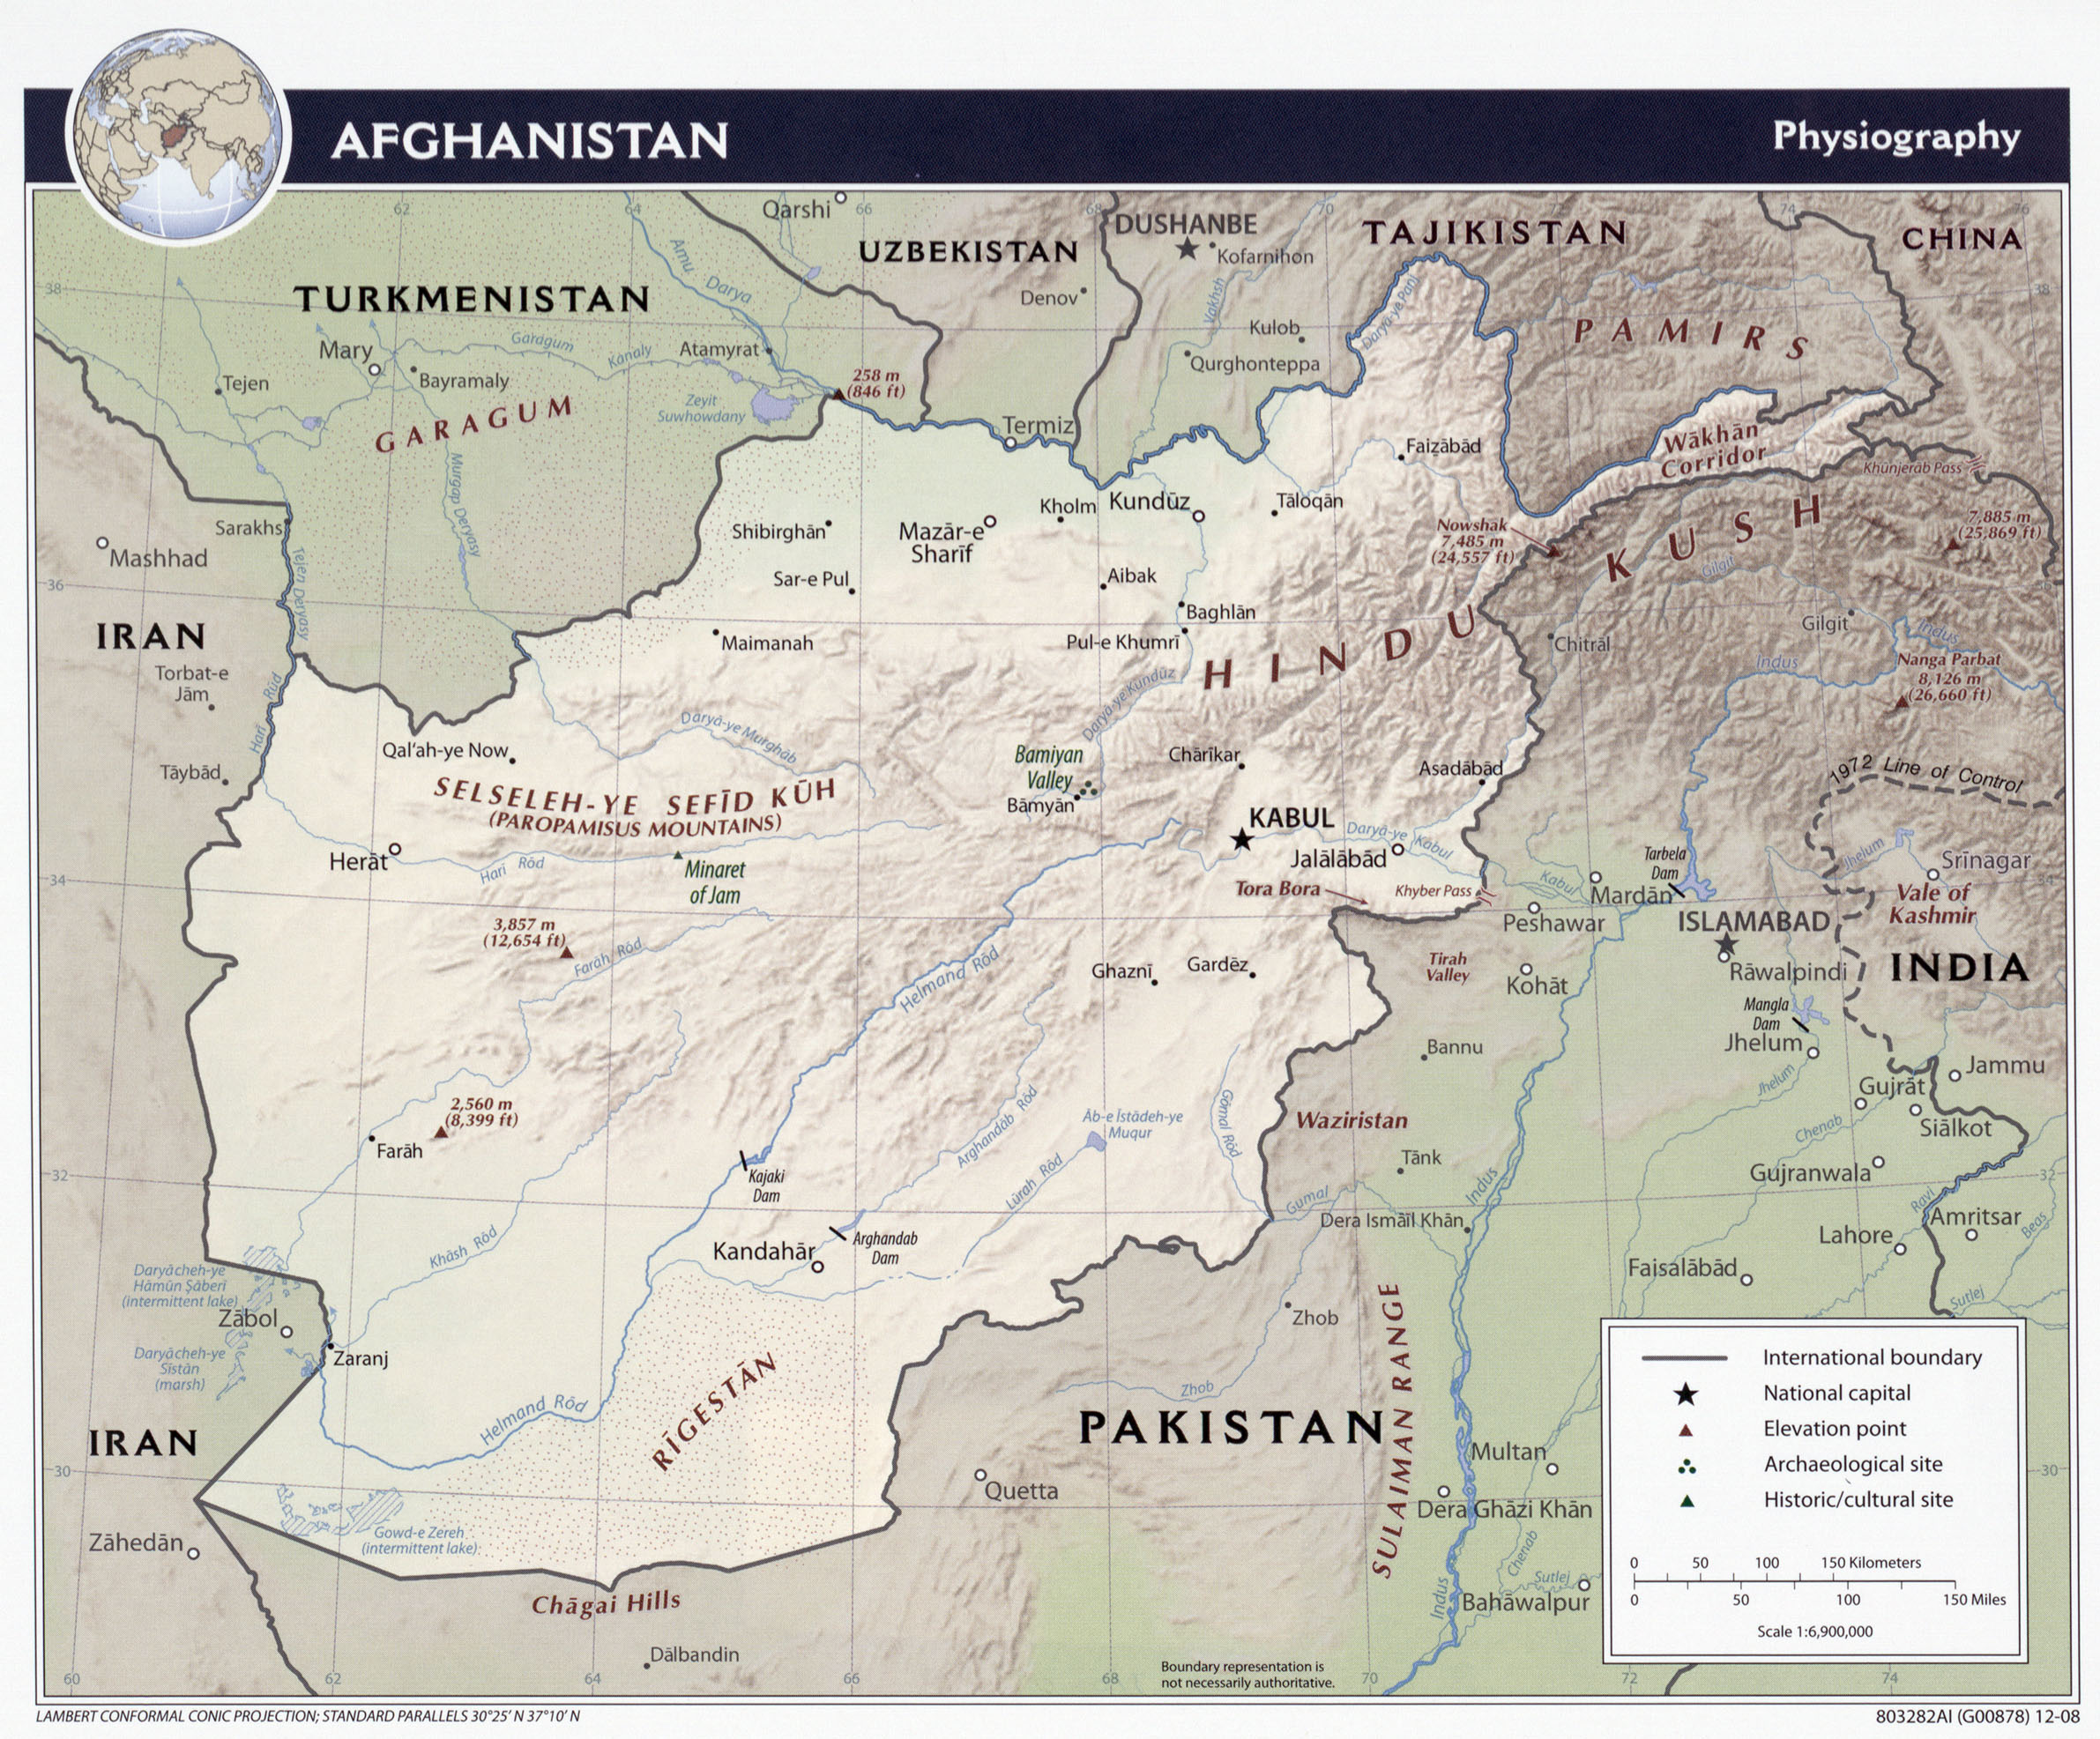 Afghanistan Physical Map Of Airports on physical and political map of louisiana, physical map of madagascar, physical map of russia, physical map of nauru, physical map of ancient assyria, physical map somalia, physical features of afghanistan, physical map of north china, physical map of bodies of water, physical map of georgia, physical map of dubai, physical map of n. america, physical map of bay of bengal, physical map of southern italy, physical map of the far east, physical map of norway, physical map of turkey, physical map of france, physical map of pakistan, physical map of kenya,